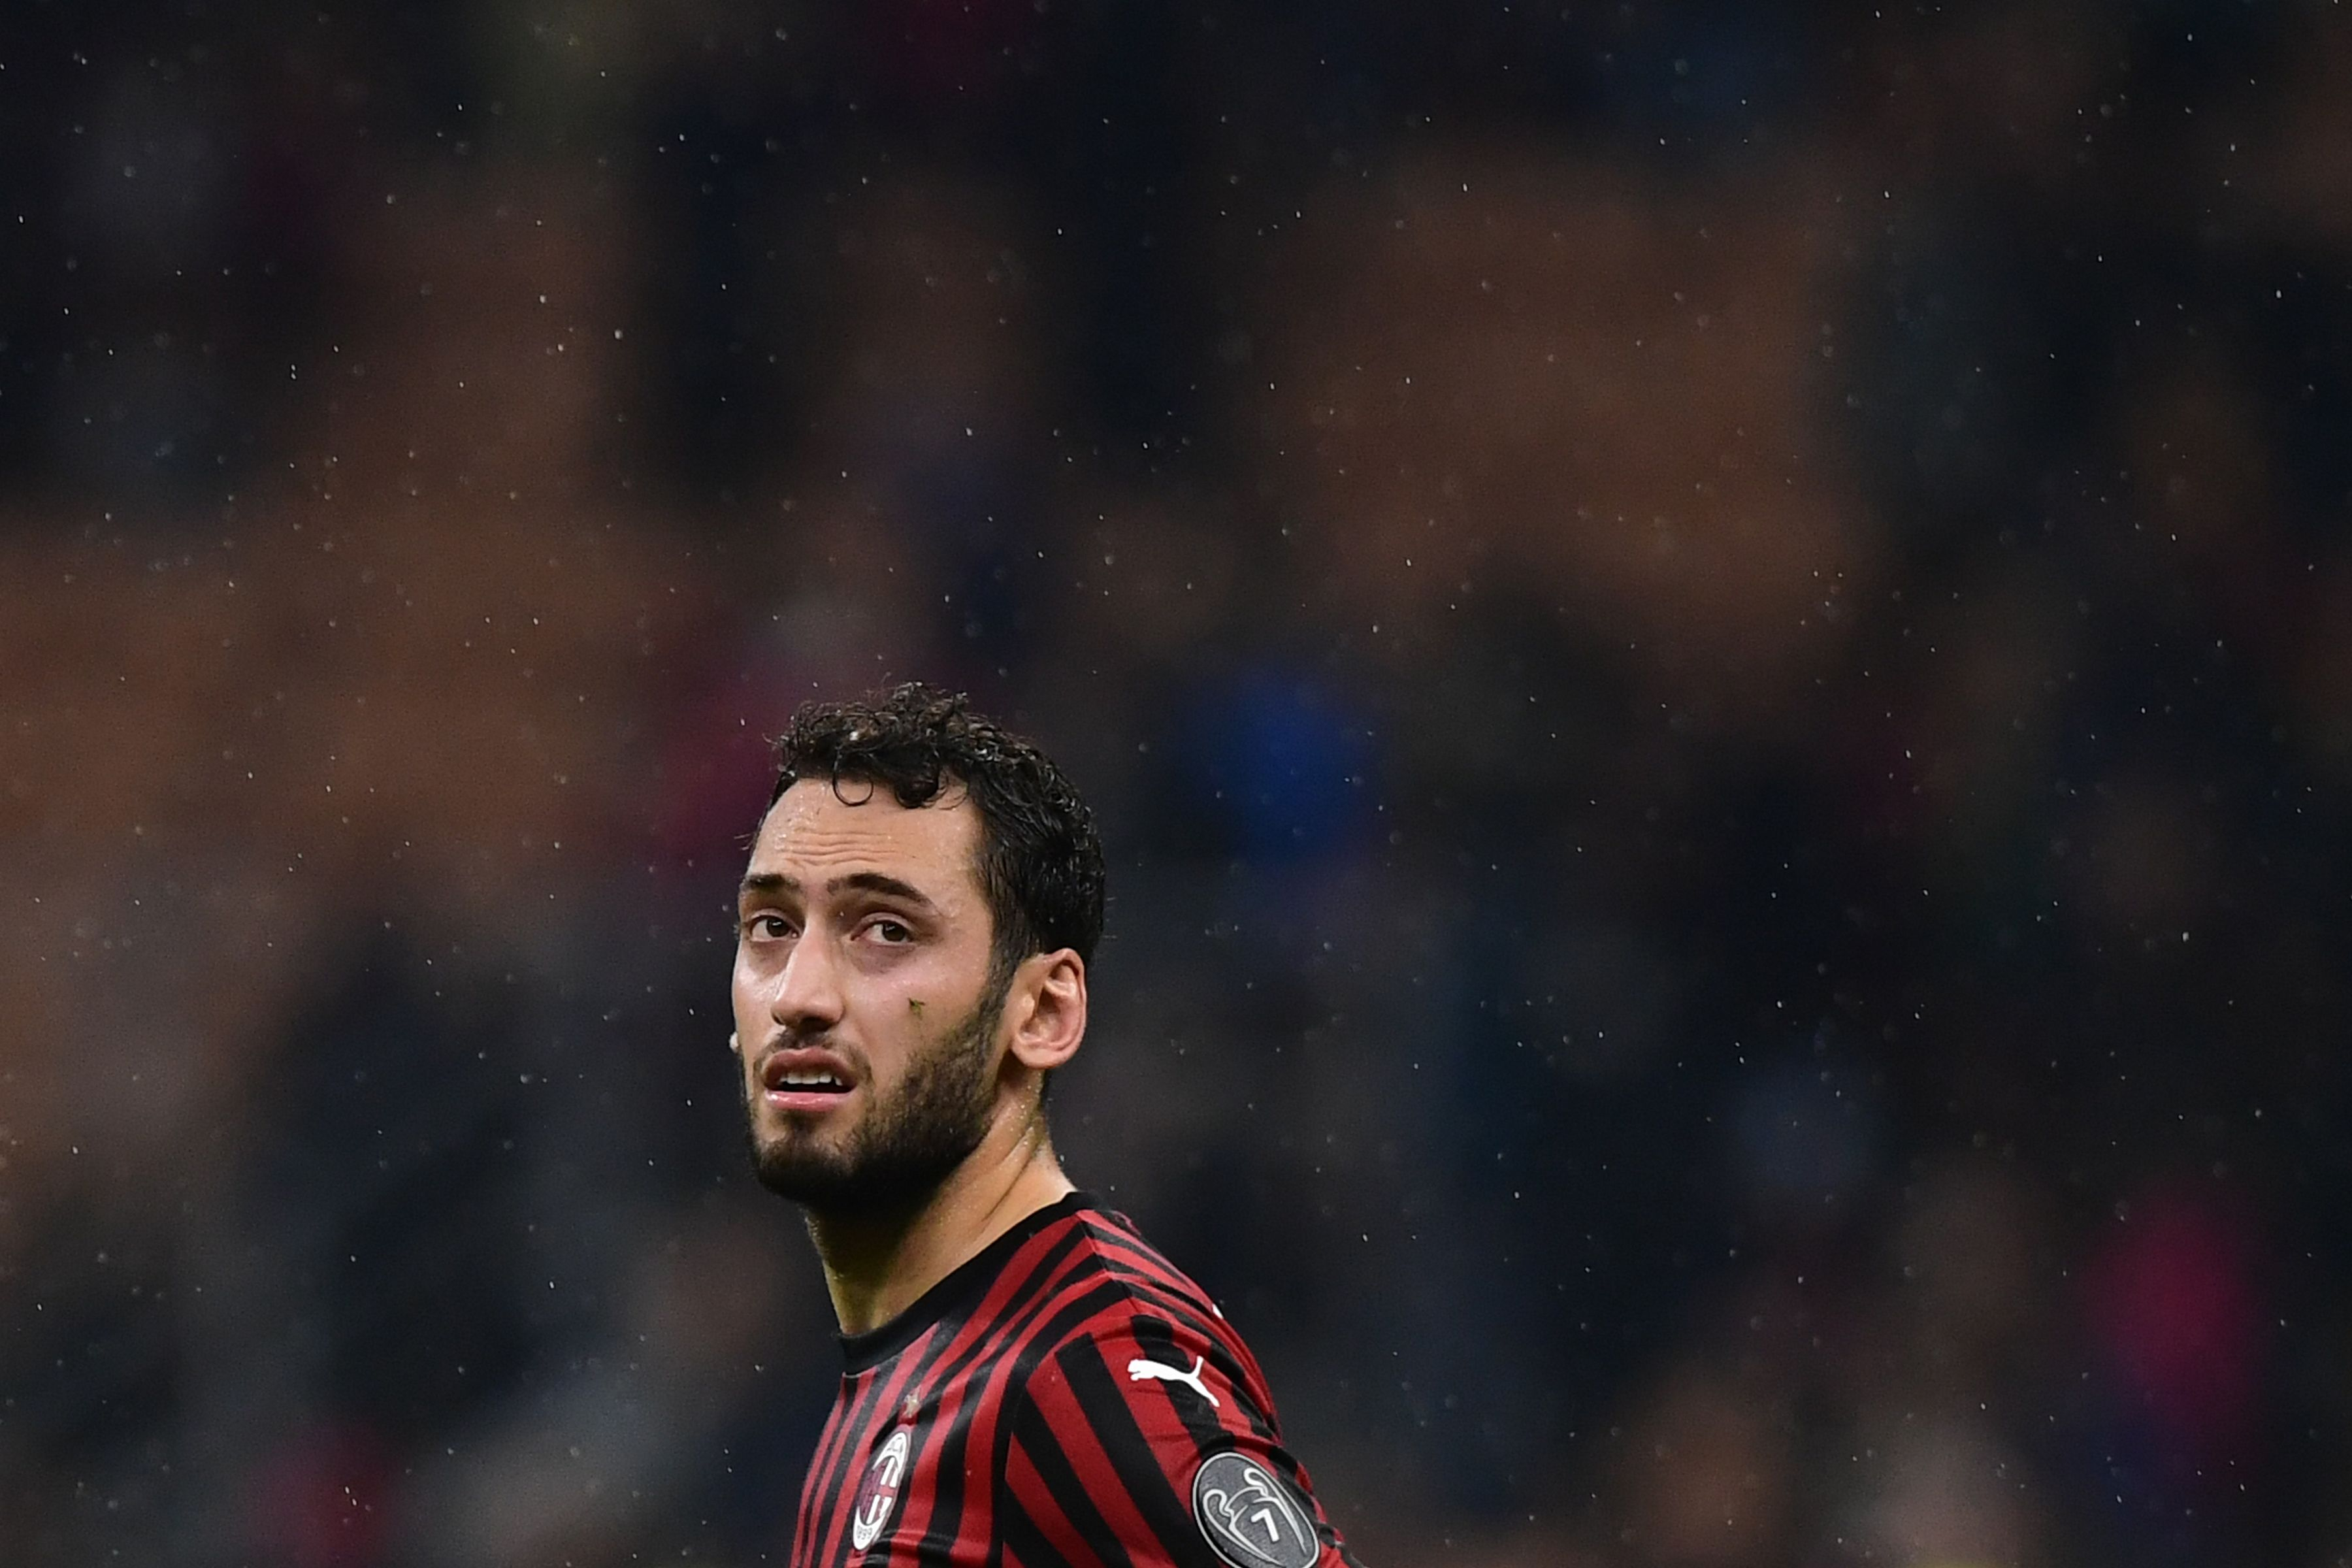 Atletico Madrid and Manchester United battling for Hakan Calhanoglu (Photo by Miguel Medina/AFP via Getty Images)